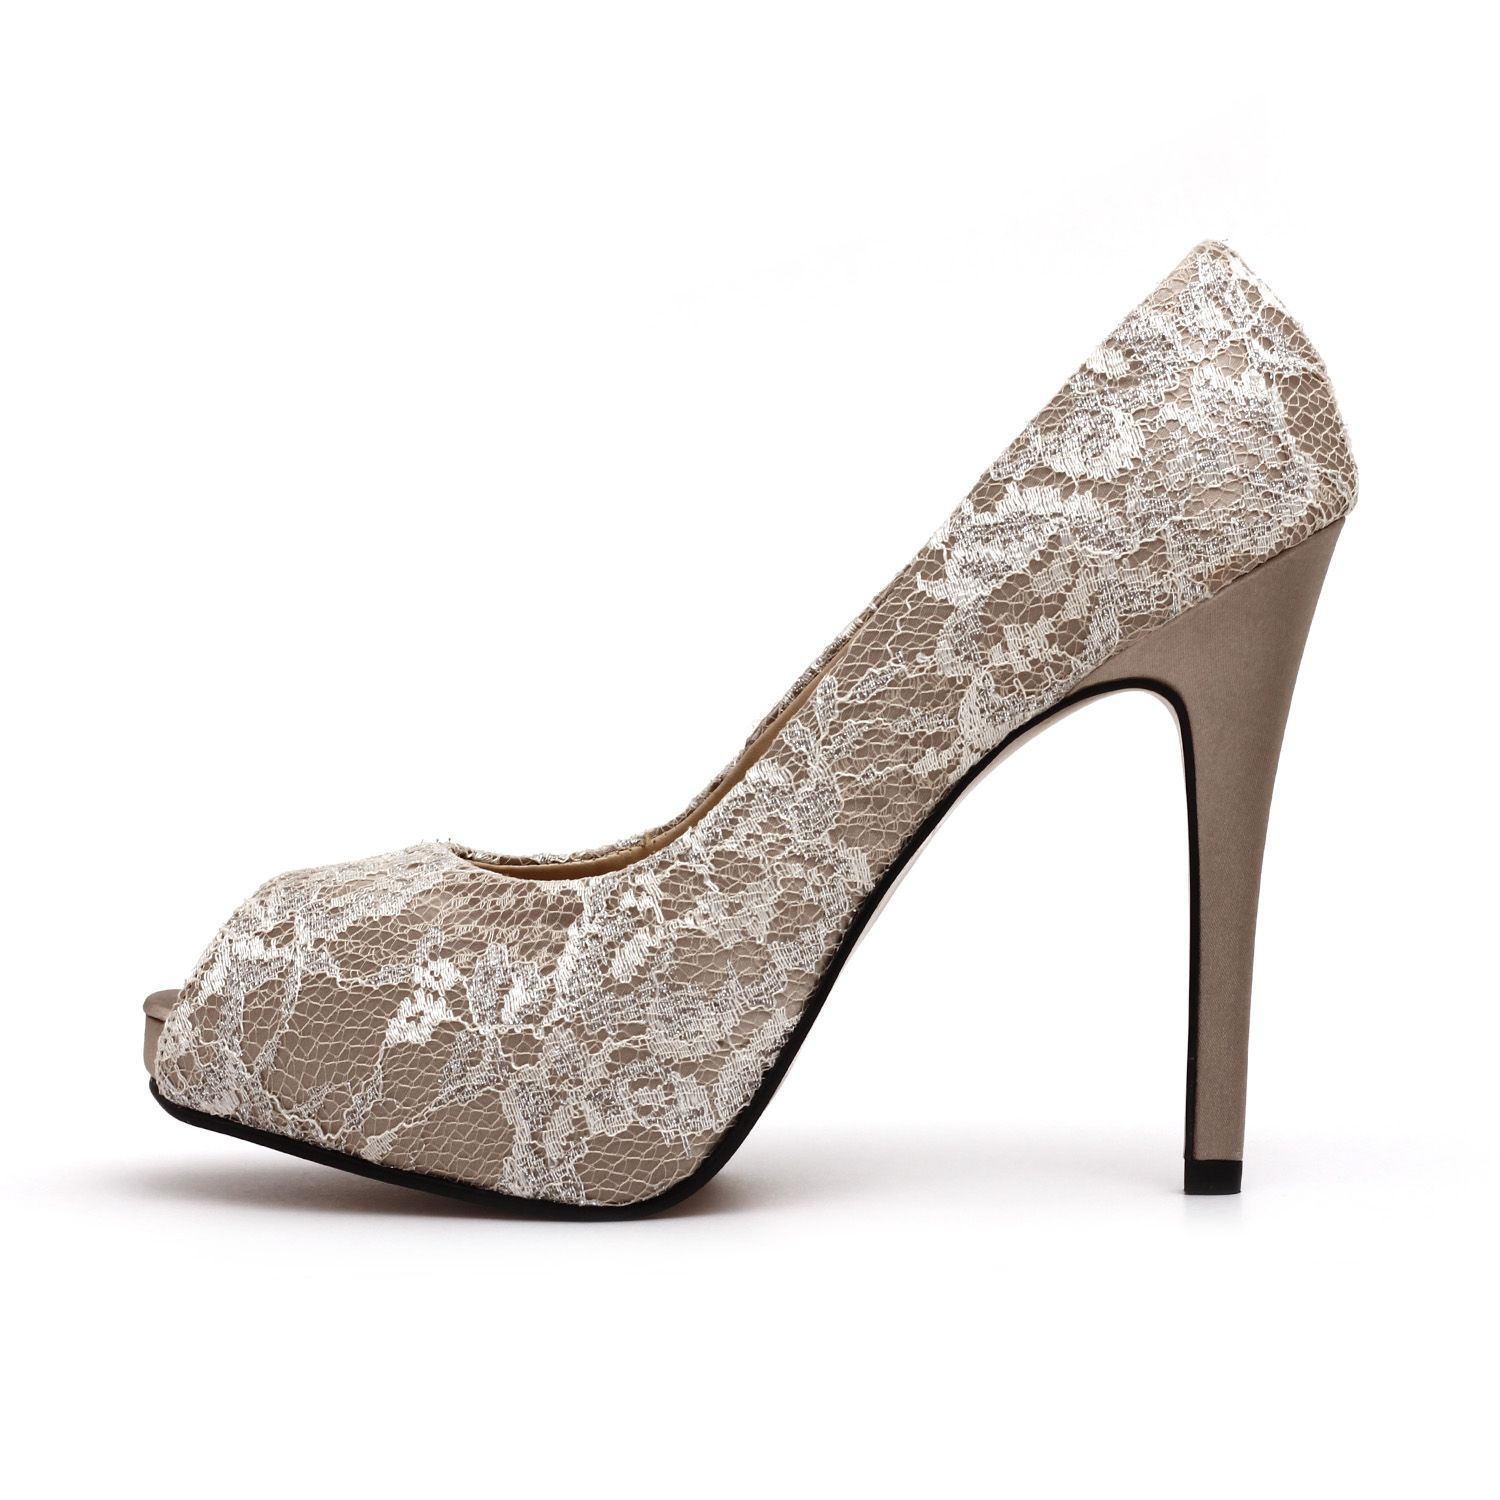 The Beautiful Champagne Colored Wedding Shoes Design To Wear As Your Wedding  Shoes Choice Design Ideas